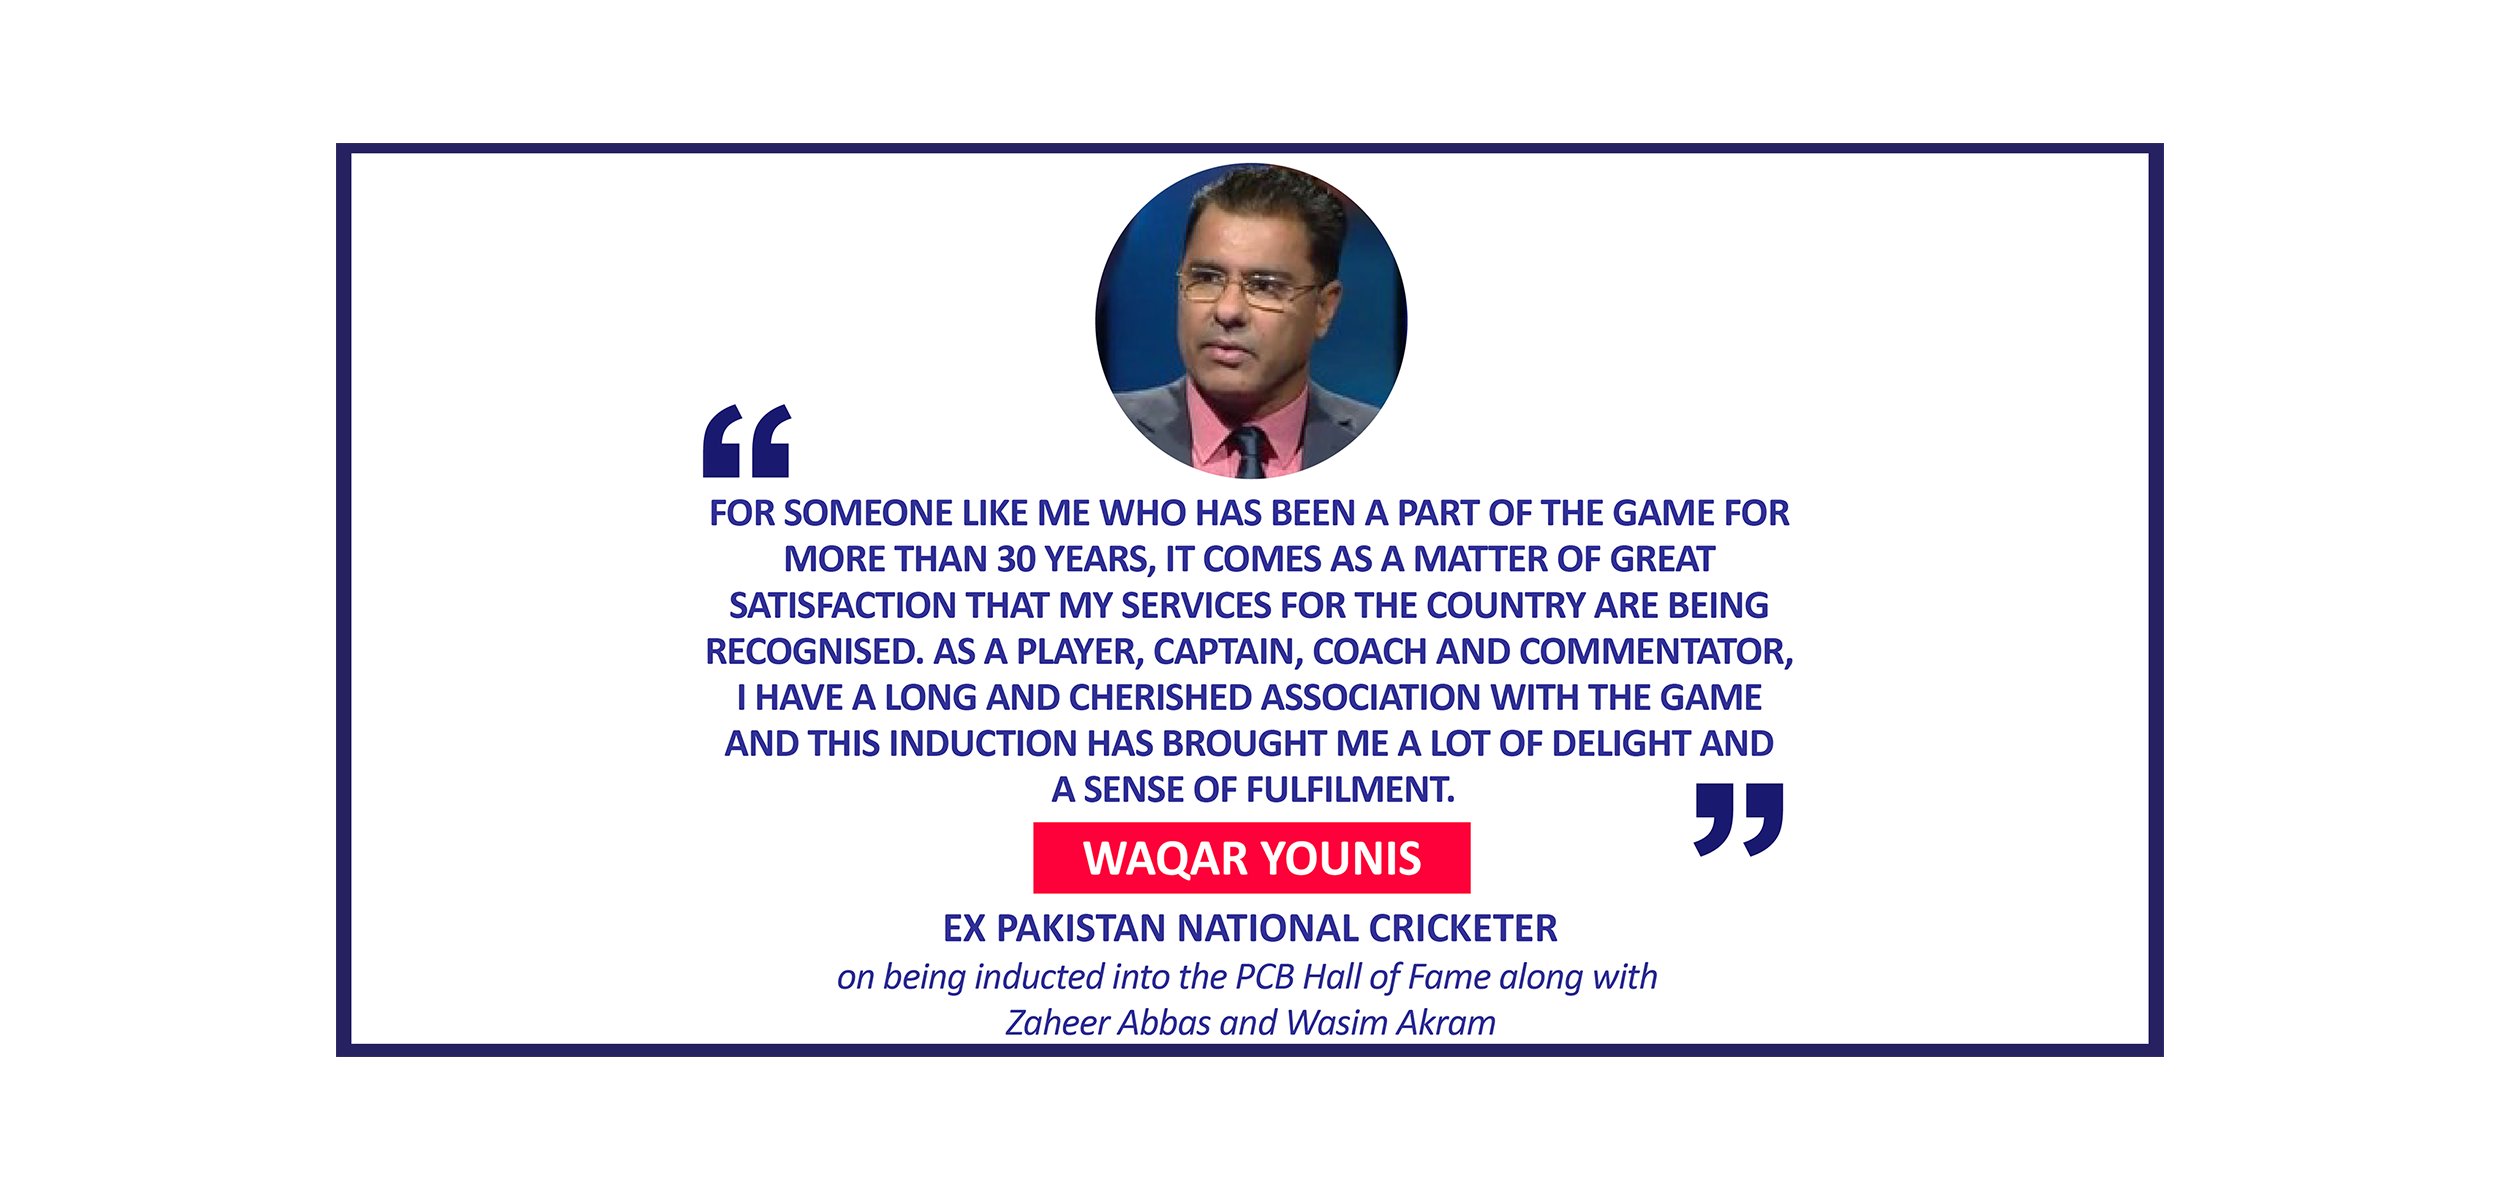 Waqar Younis, Ex Pakistan National Cricketer on being inducted into the PCB Hall of Fame along with Zaheer Abbas and Wasim Akram